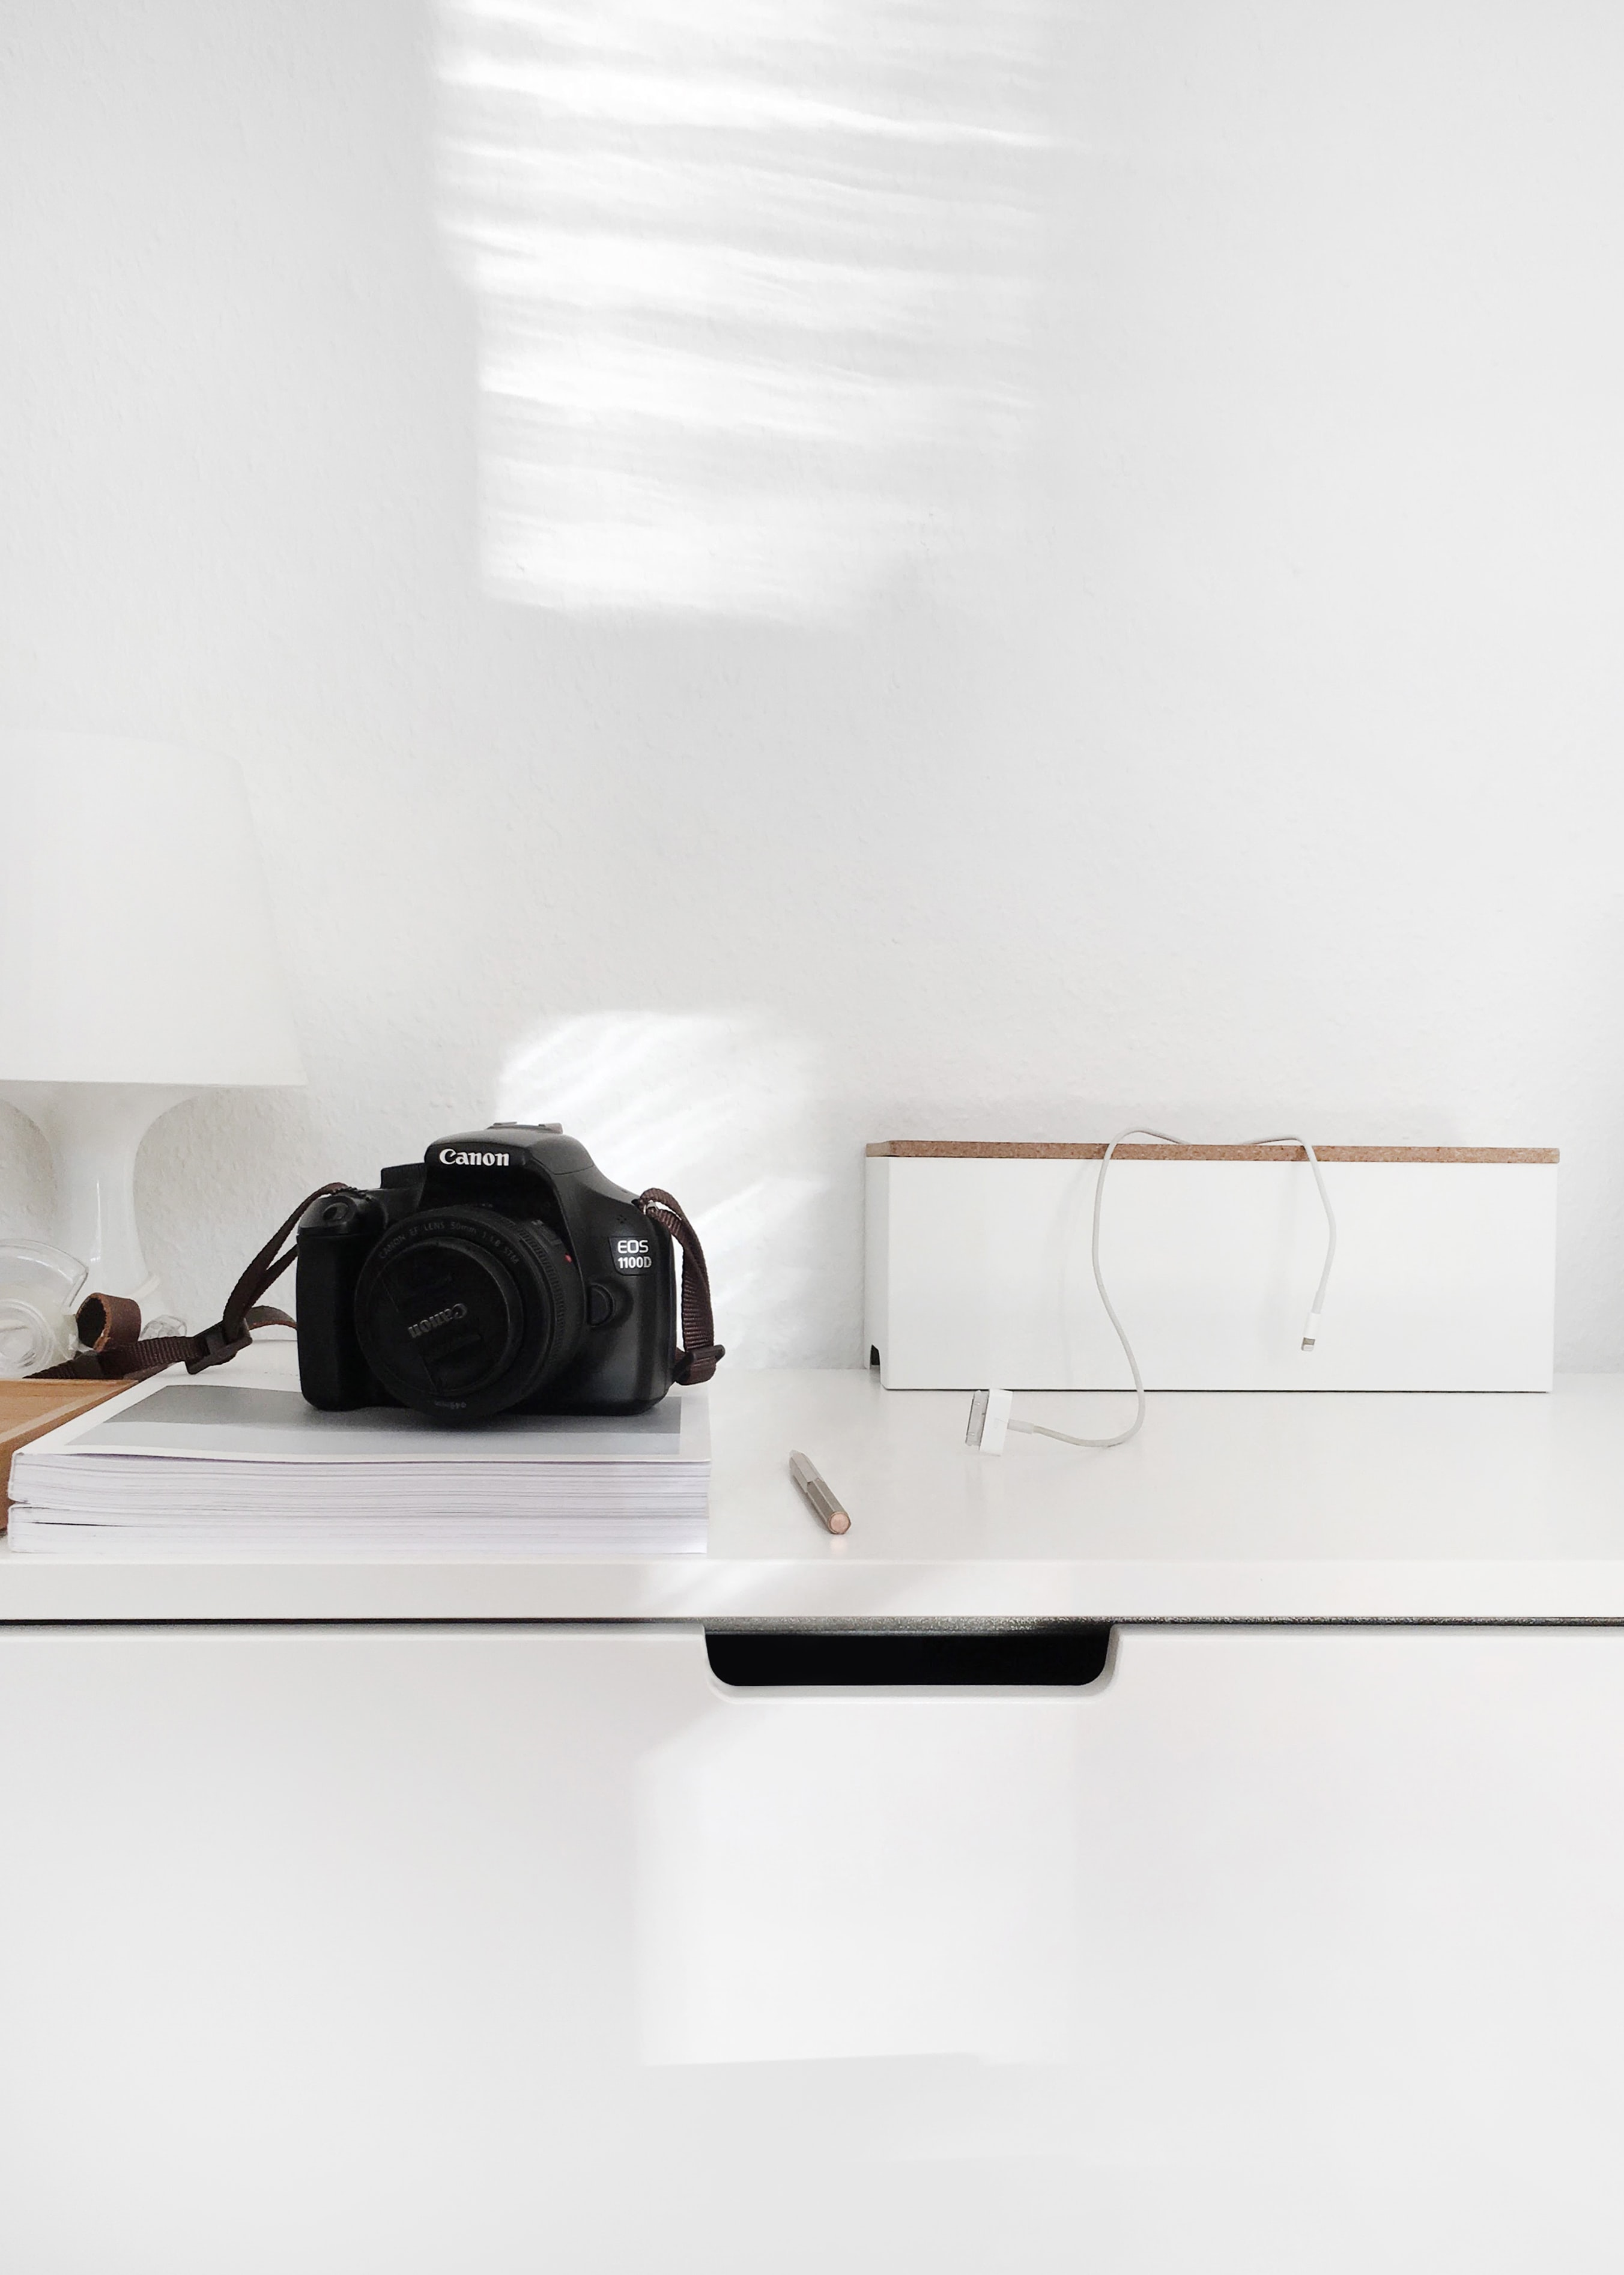 Canon DSLR camera on table